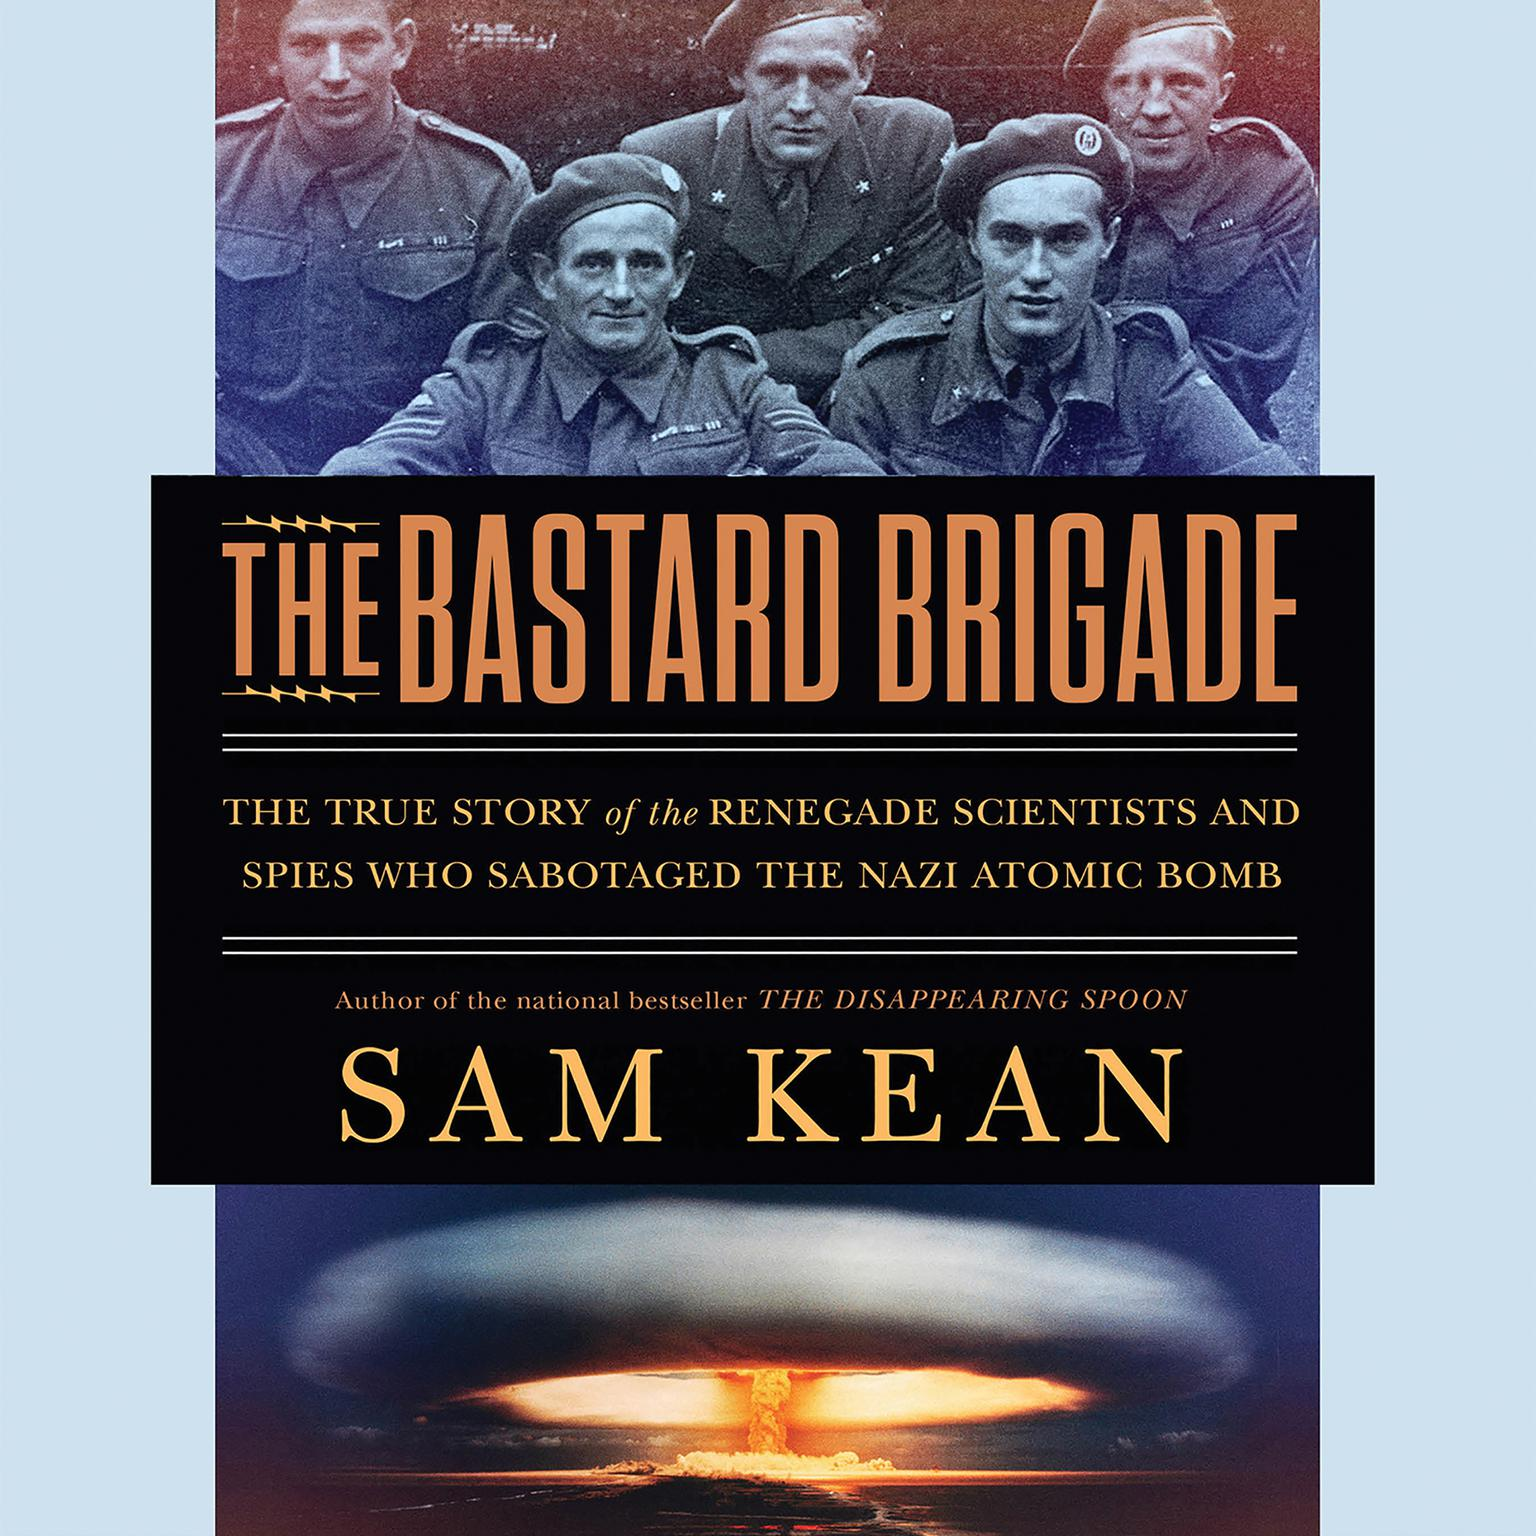 Printable The Bastard Brigade: The True Story of the Renegade Scientists and Spies Who Sabotaged the Nazi Atomic Bomb Audiobook Cover Art